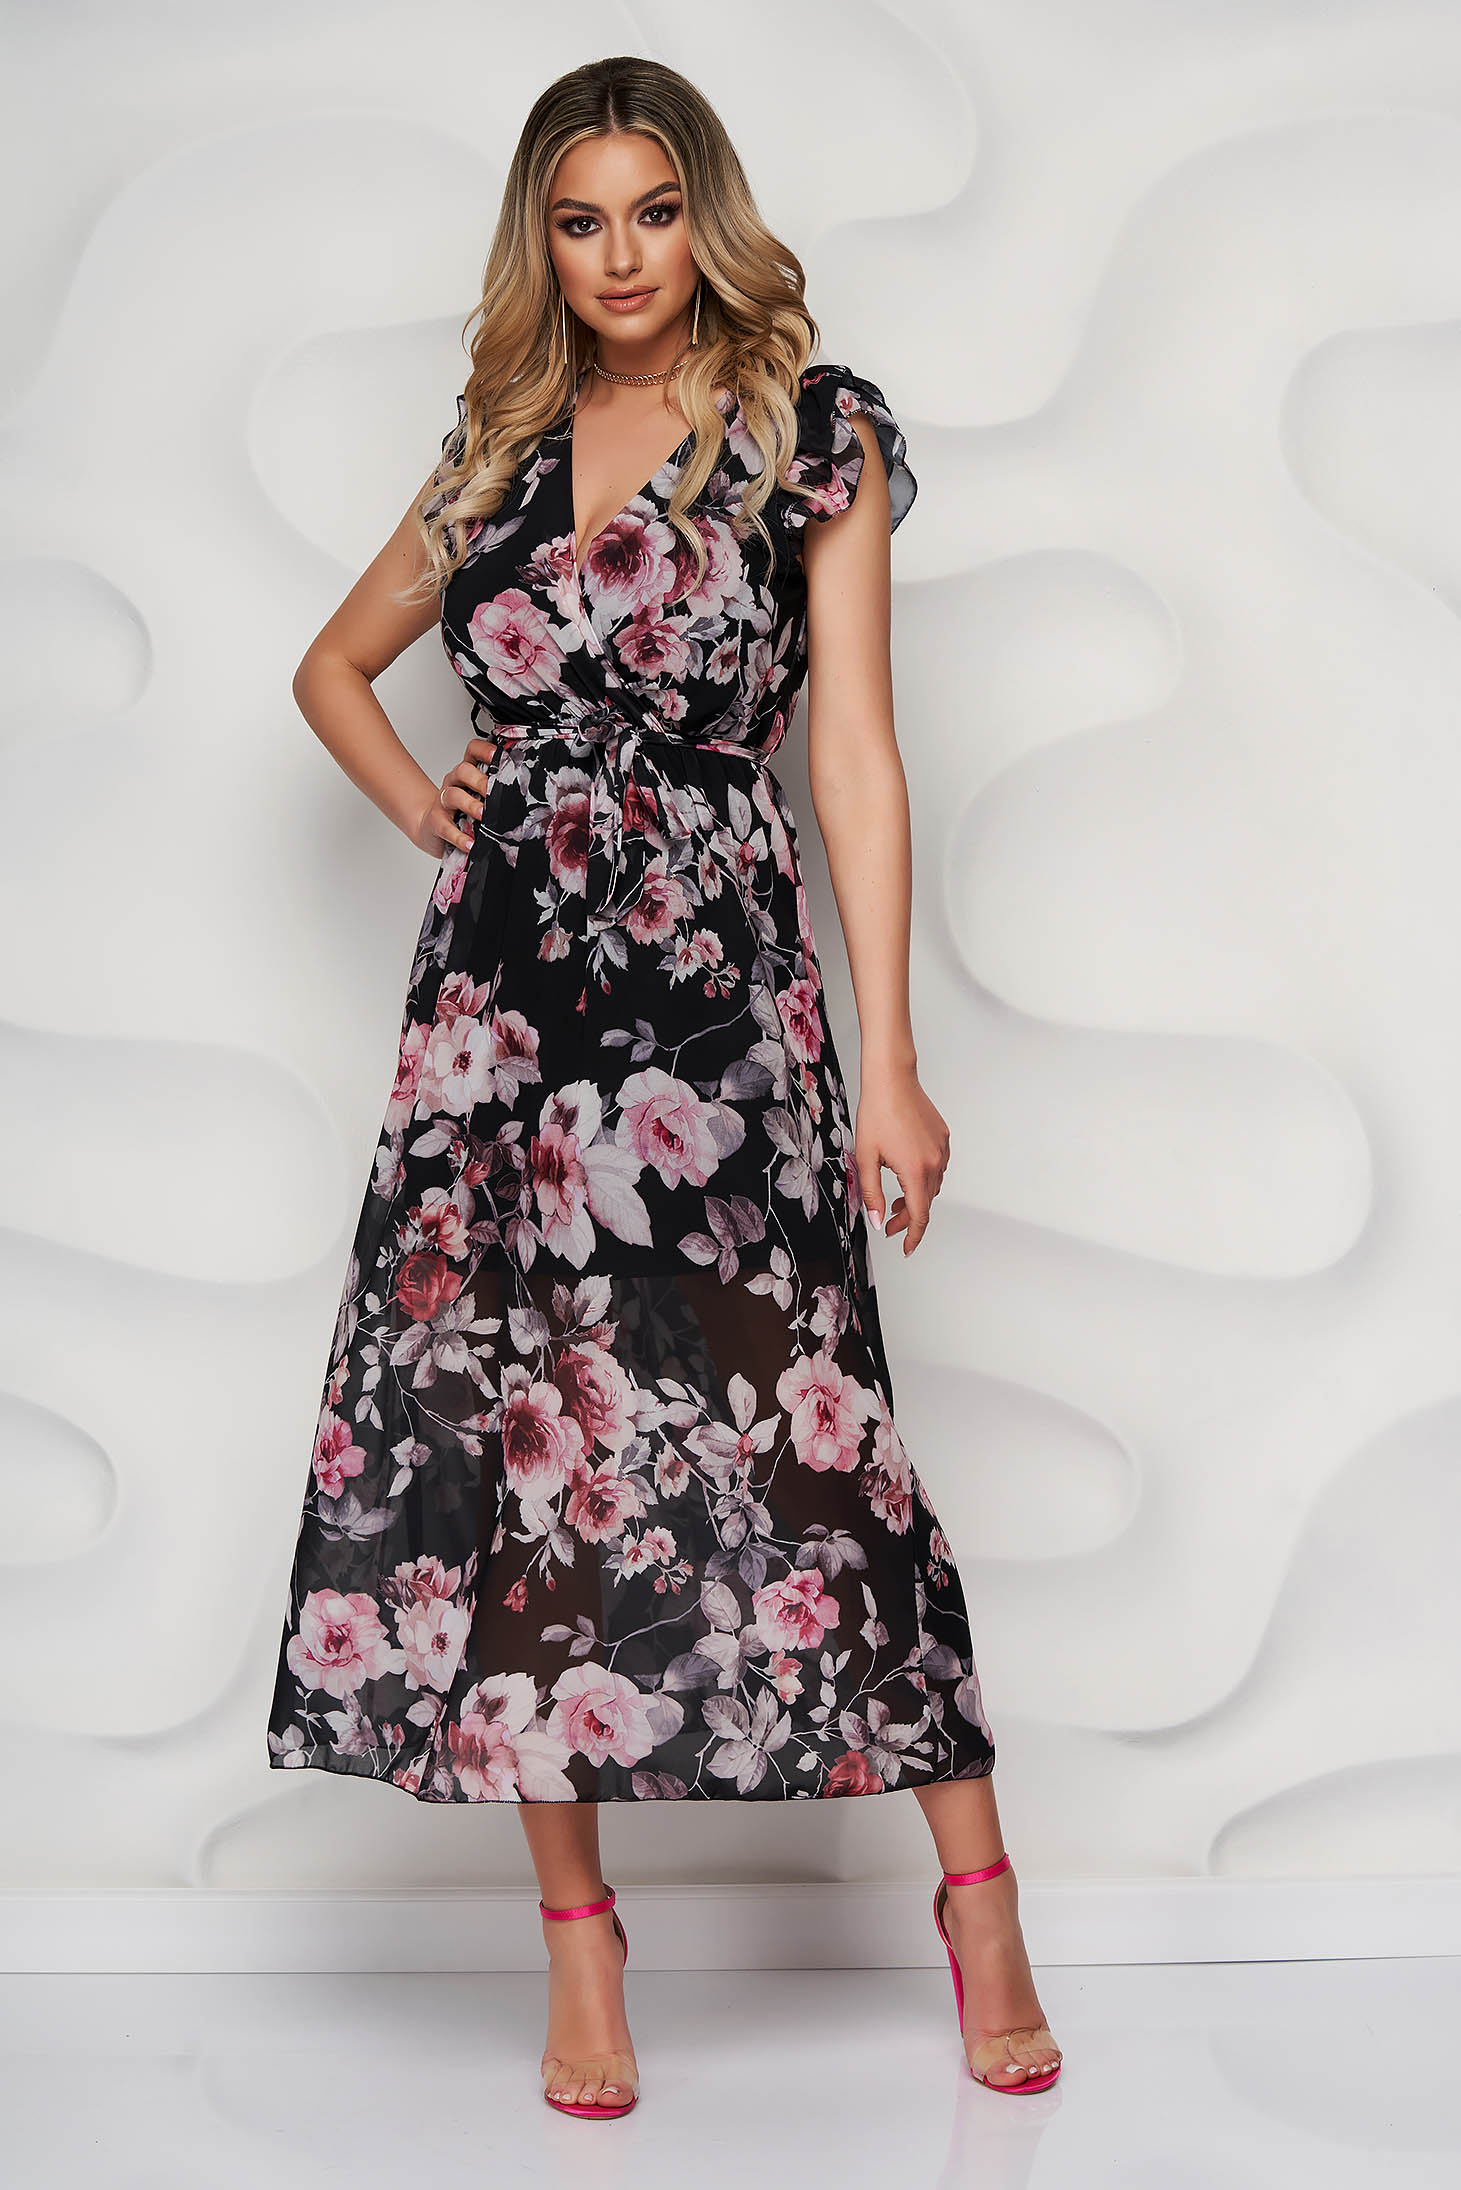 StarShinerS black dress daily long from veil fabric with floral print accessorized with tied waistband with ruffled sleeves